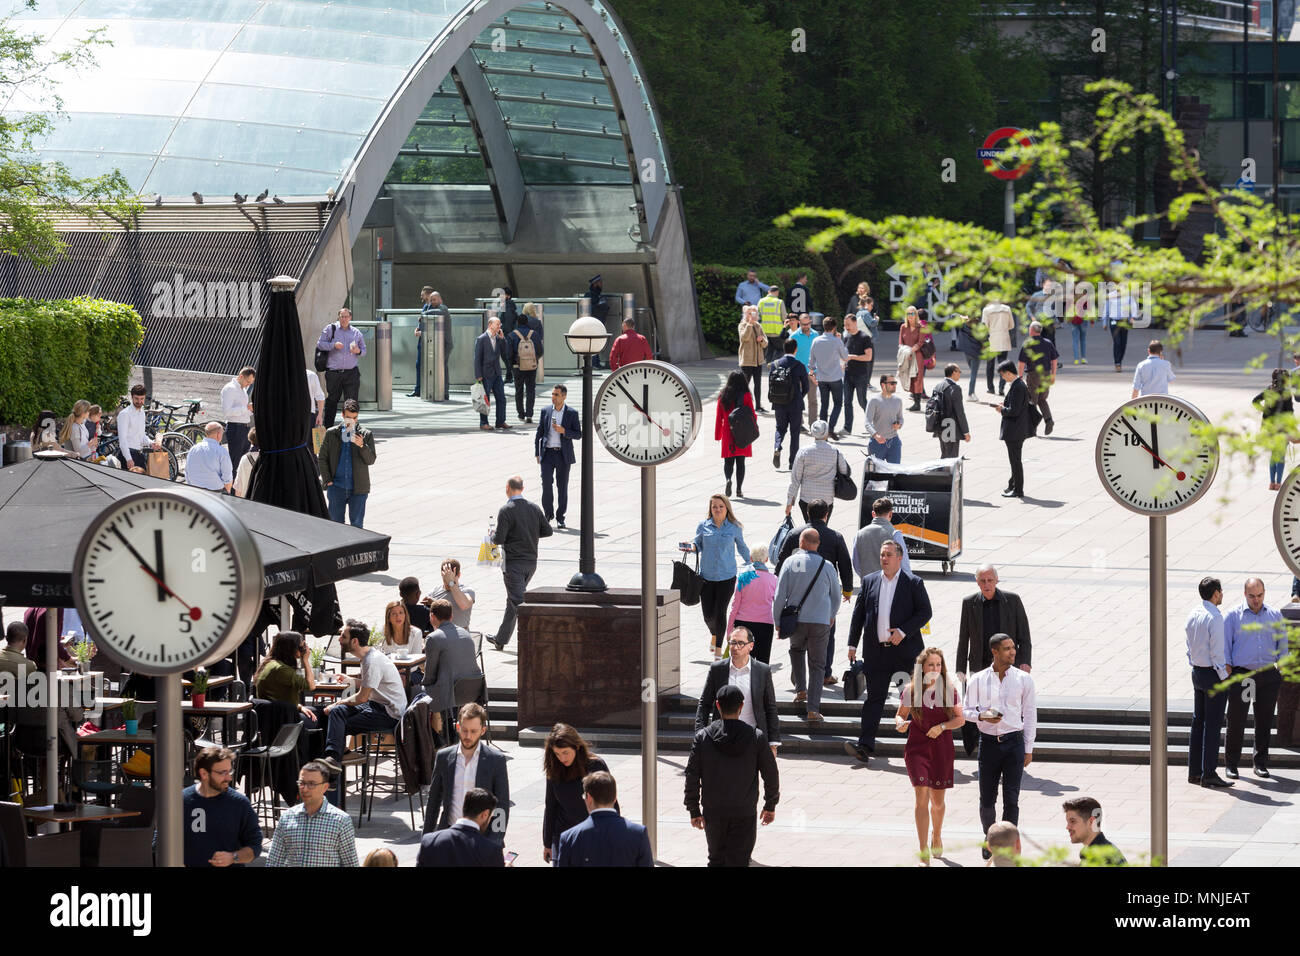 Canary Wharf, clocks show the time just before 12pm outside the underground station with employees milling around enjoying the sunshine - Stock Image